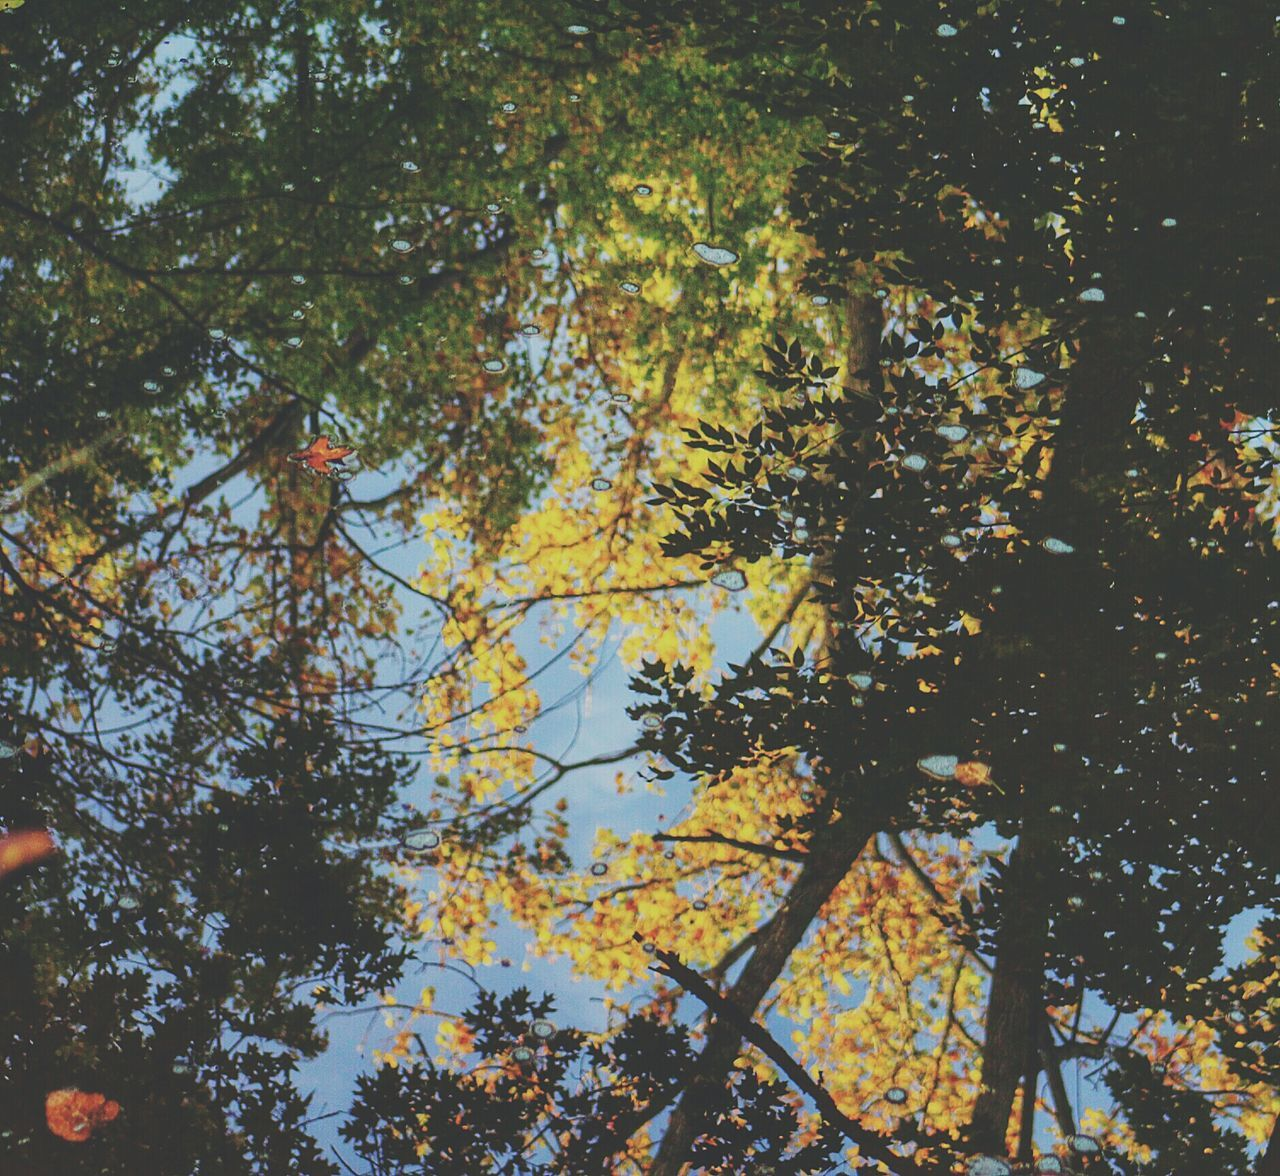 Reflection Of Trees On Pond At Park During Autumn